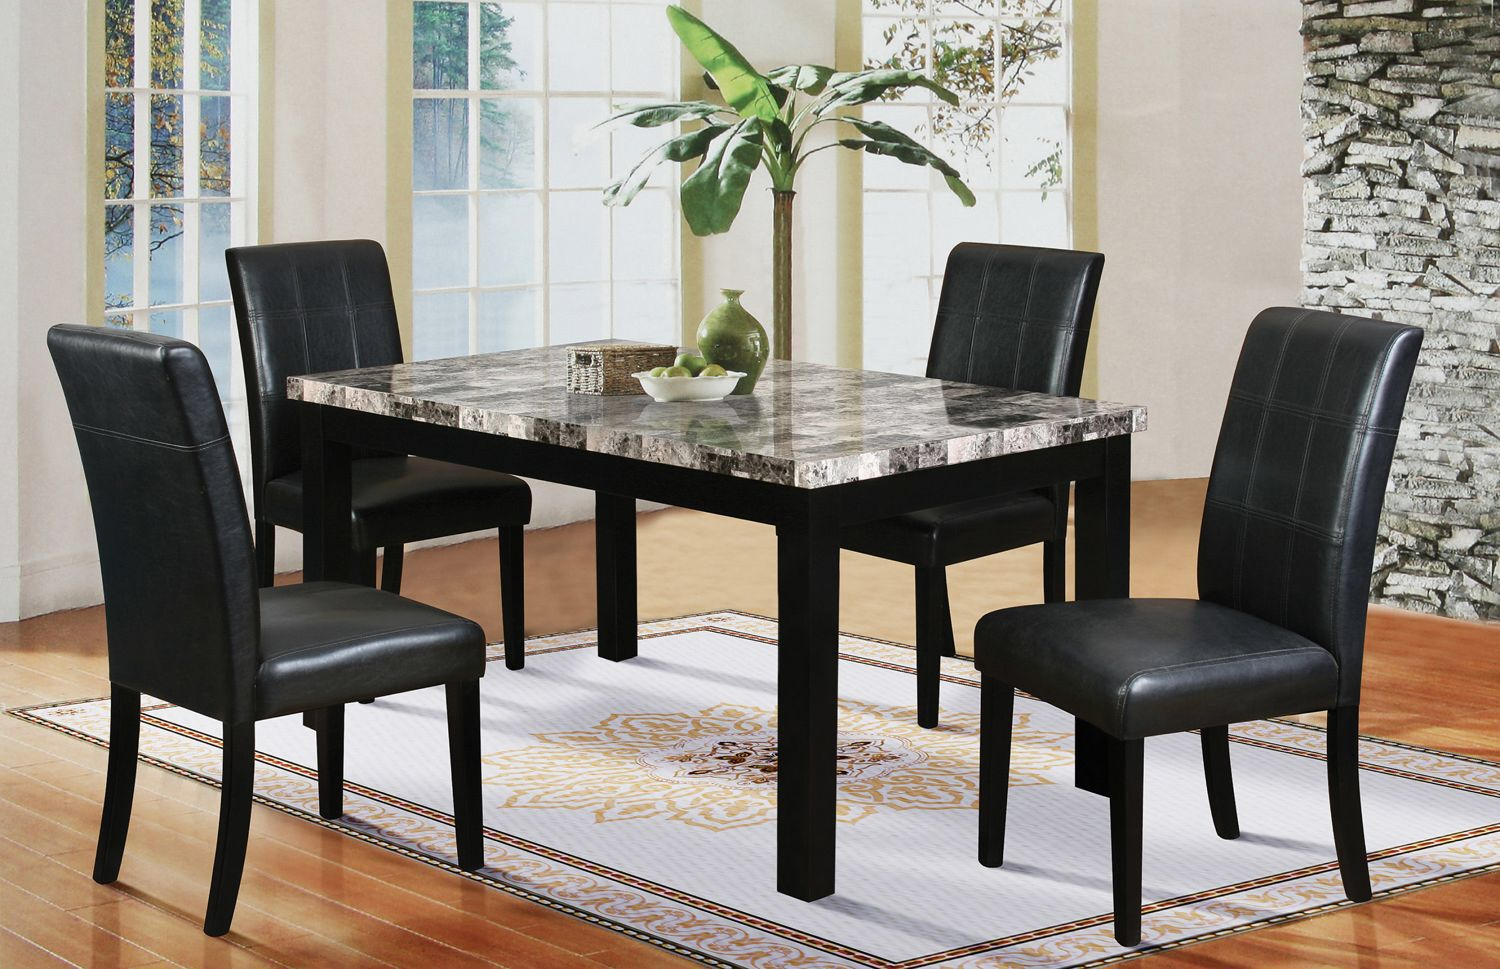 Miskell 3 Piece Dining Sets With Regard To Most Popular 5 Piece Faux Marble Dining Set (#10 of 20)